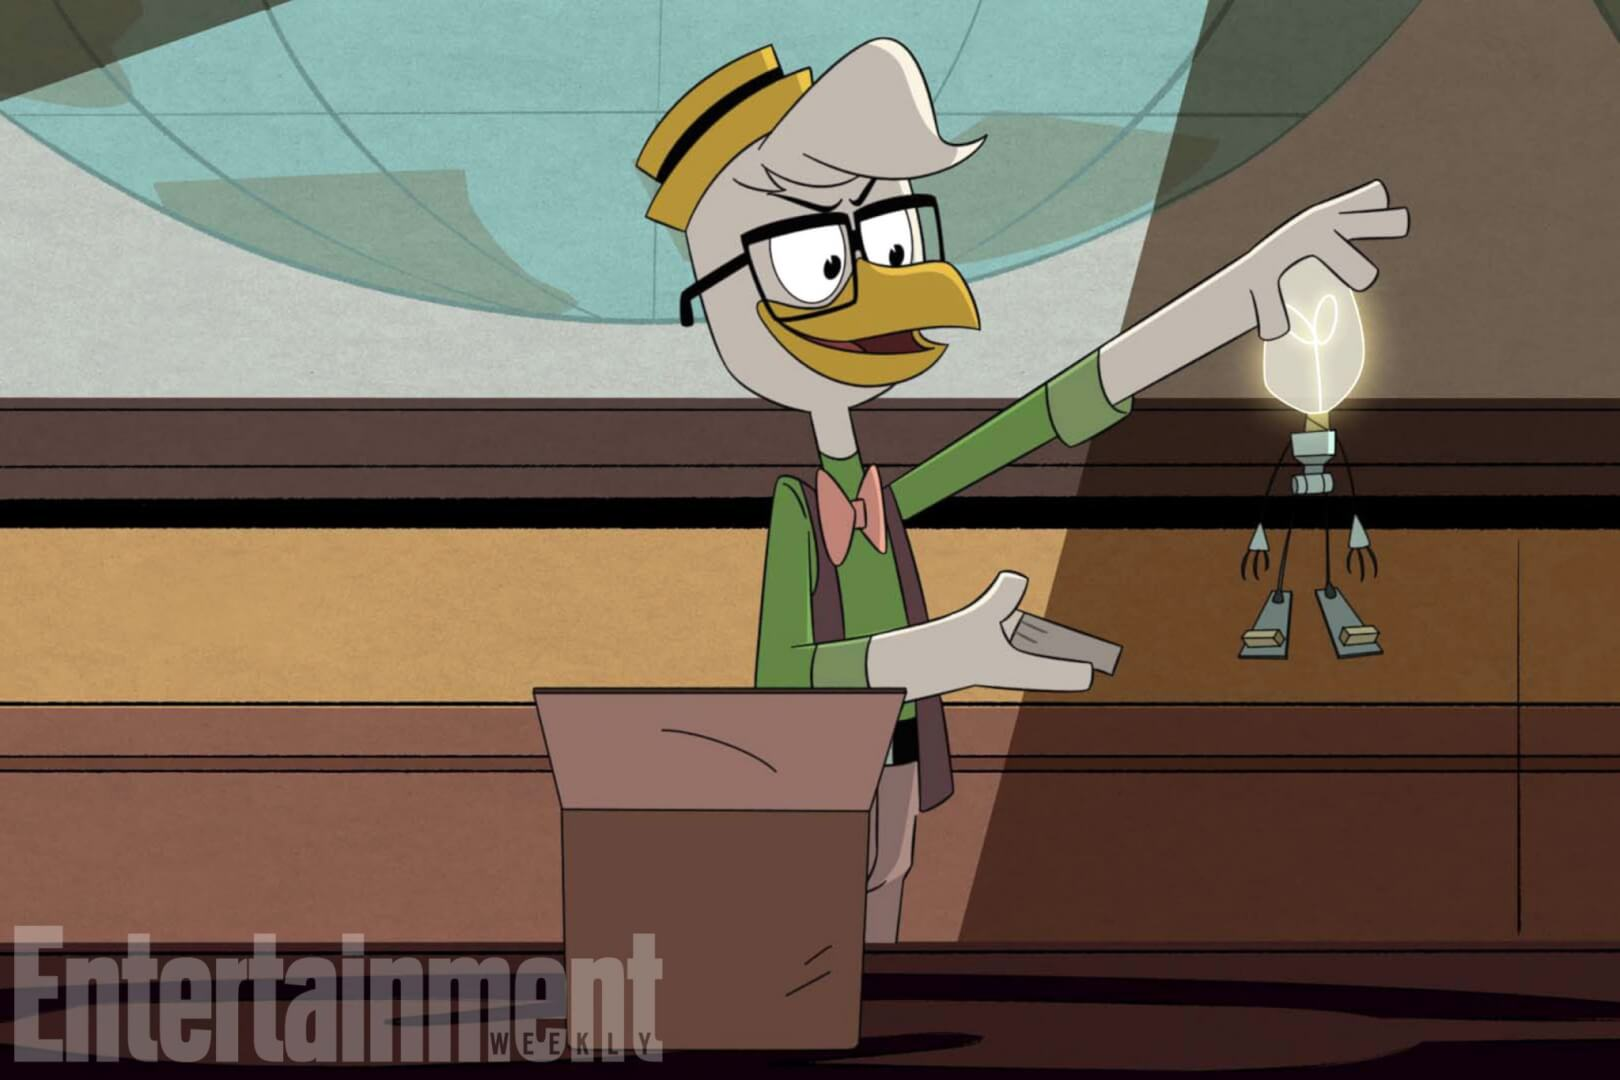 It's Donald Versus a Candle in a New DuckTales Short